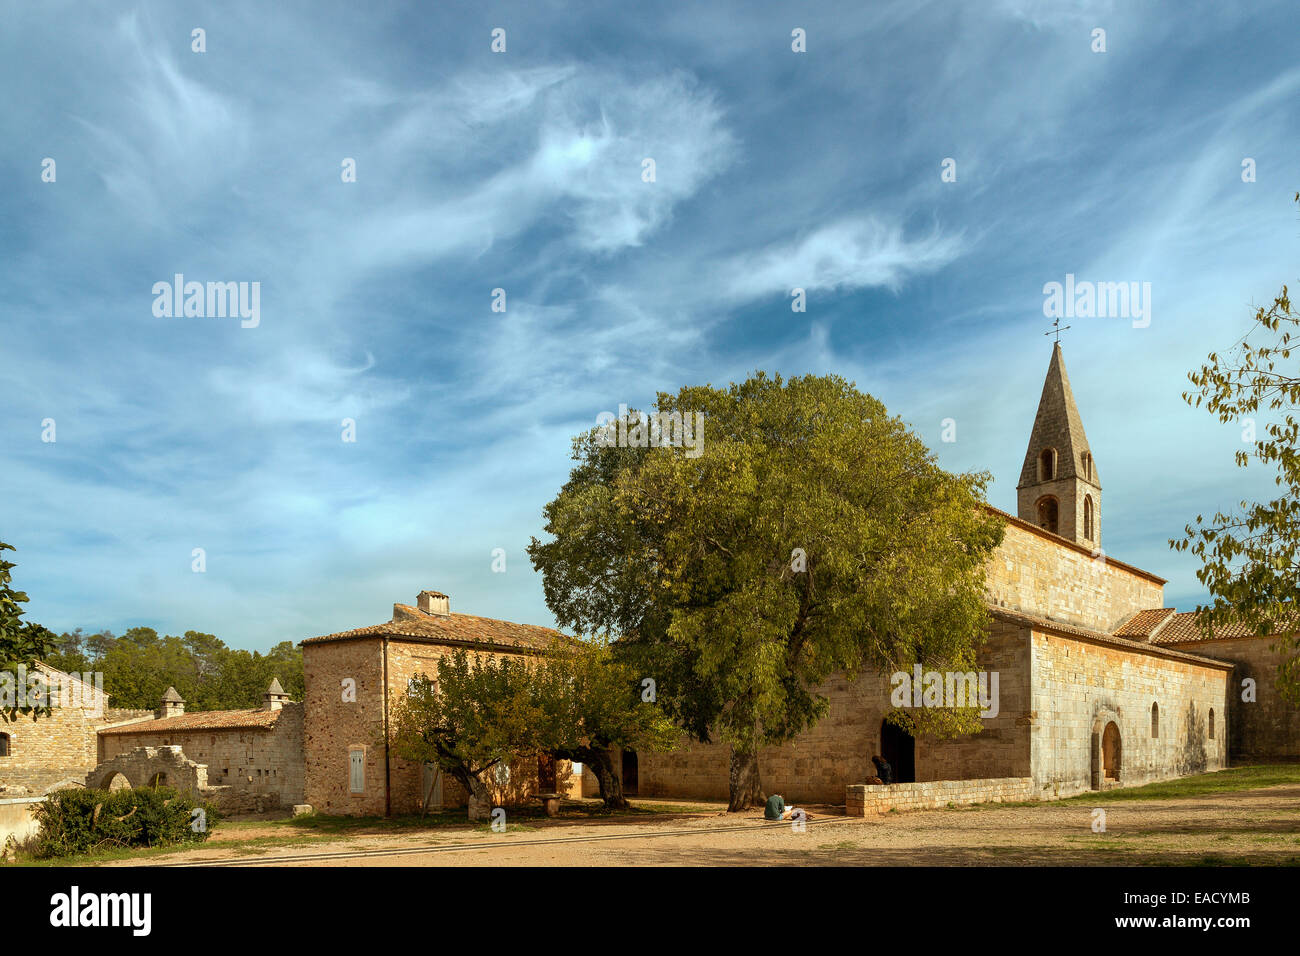 Cistercian church at Le Thoronet, France - Stock Image